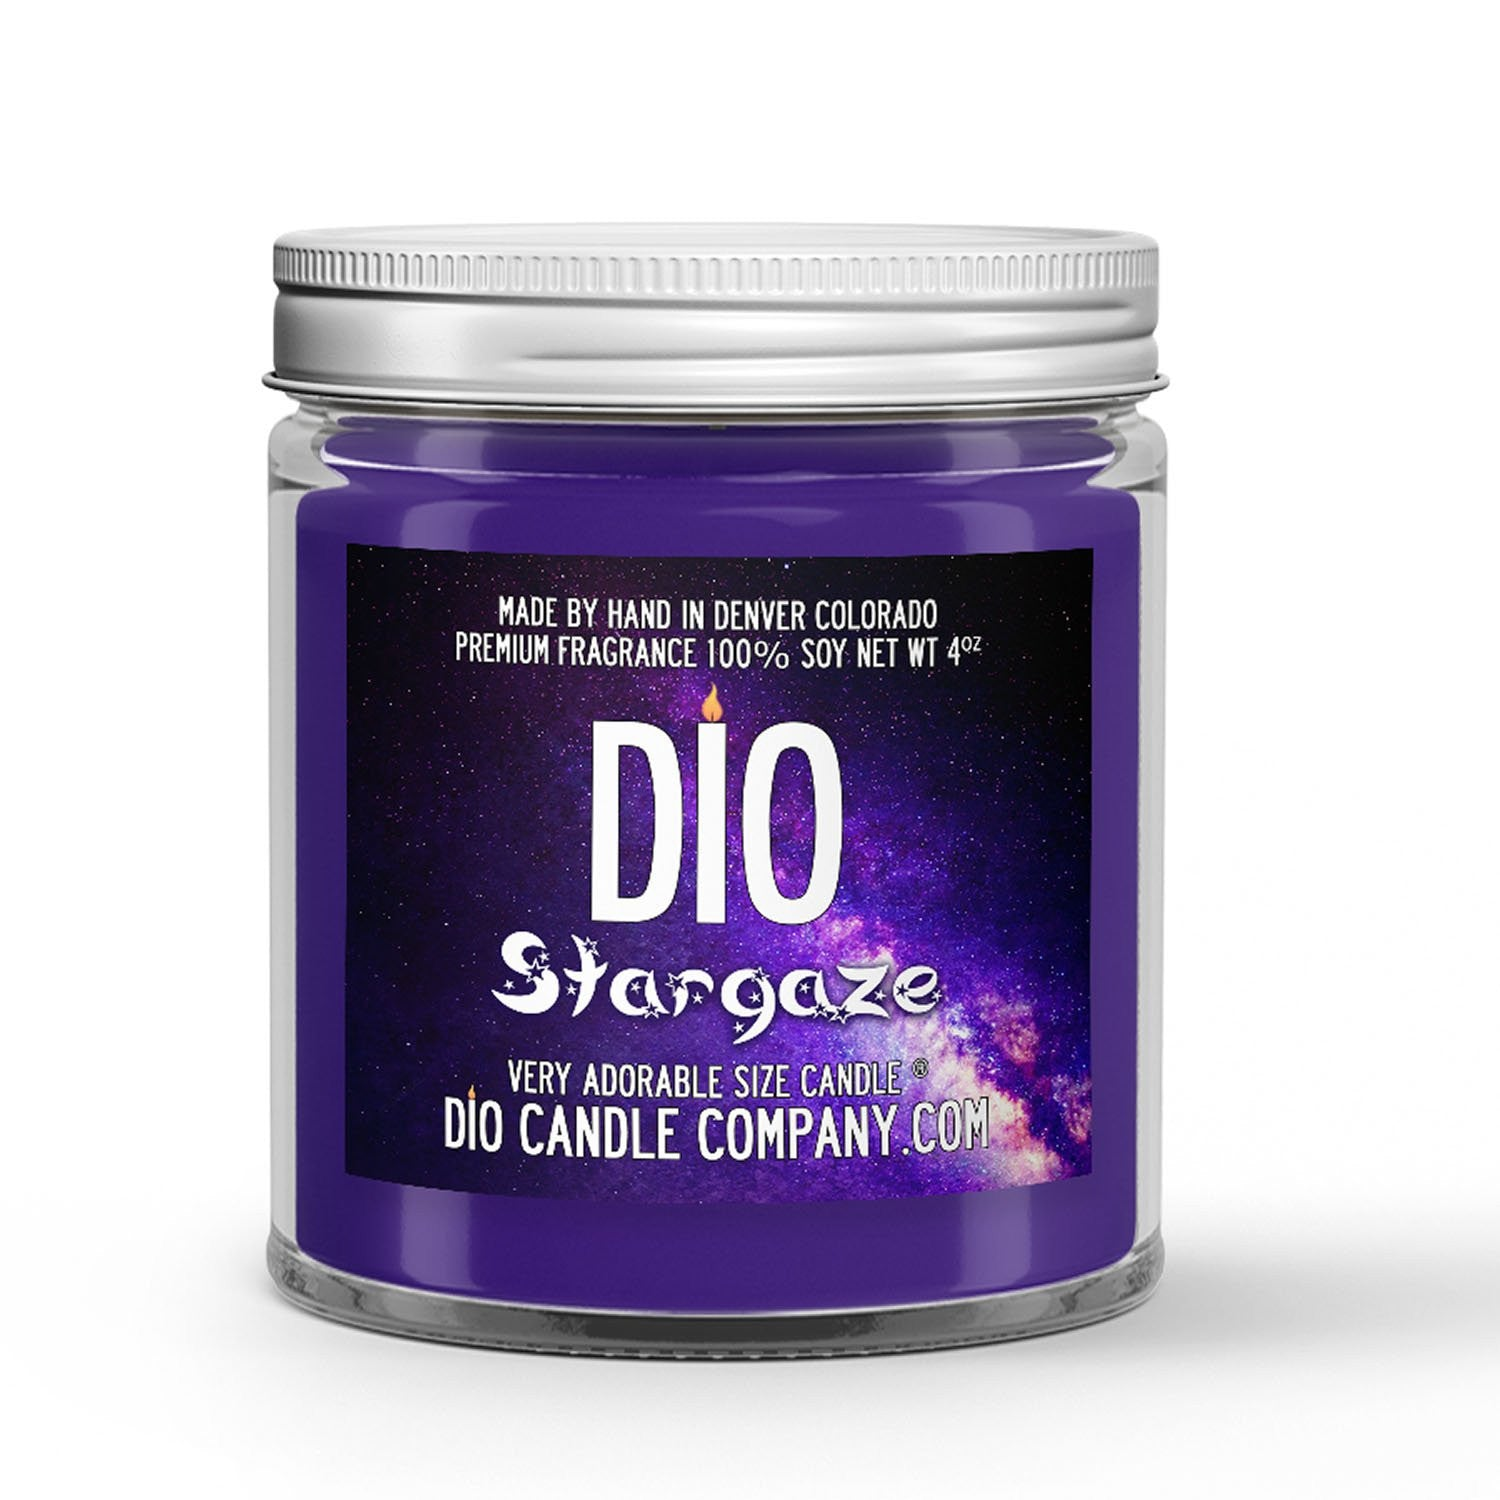 Stargaze Candle - Lily - Mint - Black Rose - Patchouli - 4oz Very Adorable Size Candle® - Dio Candle Company